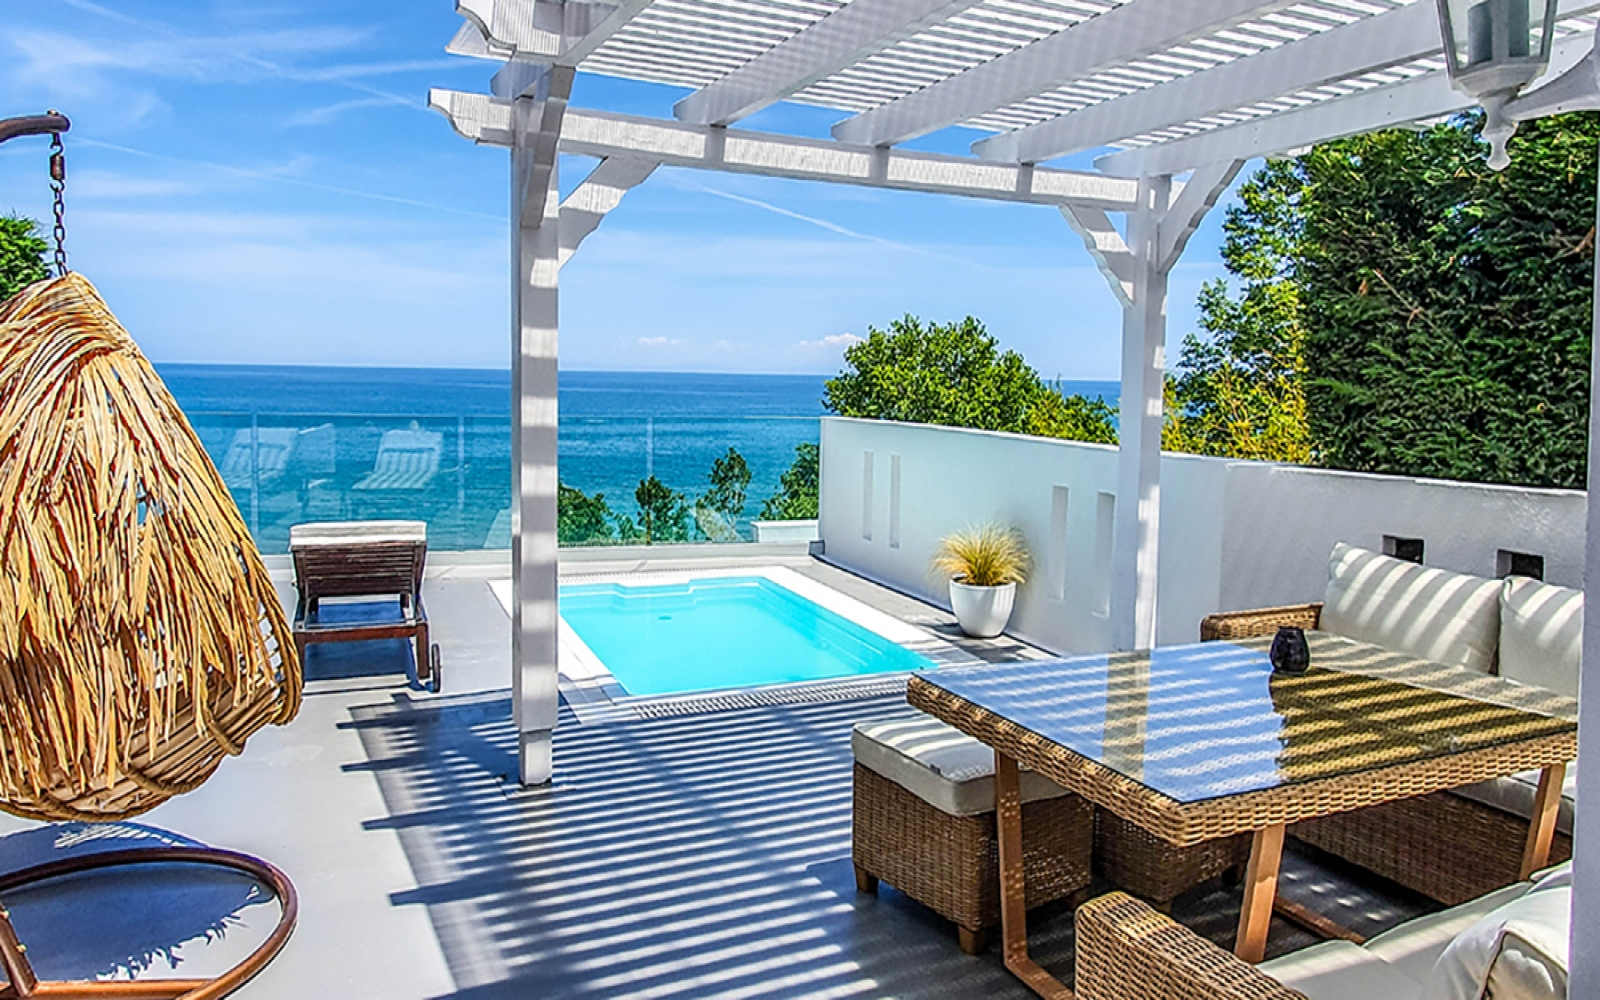 MYSTIC SUITE - Panoramic Sea View - Private Garden - Outdoor Hot Tub